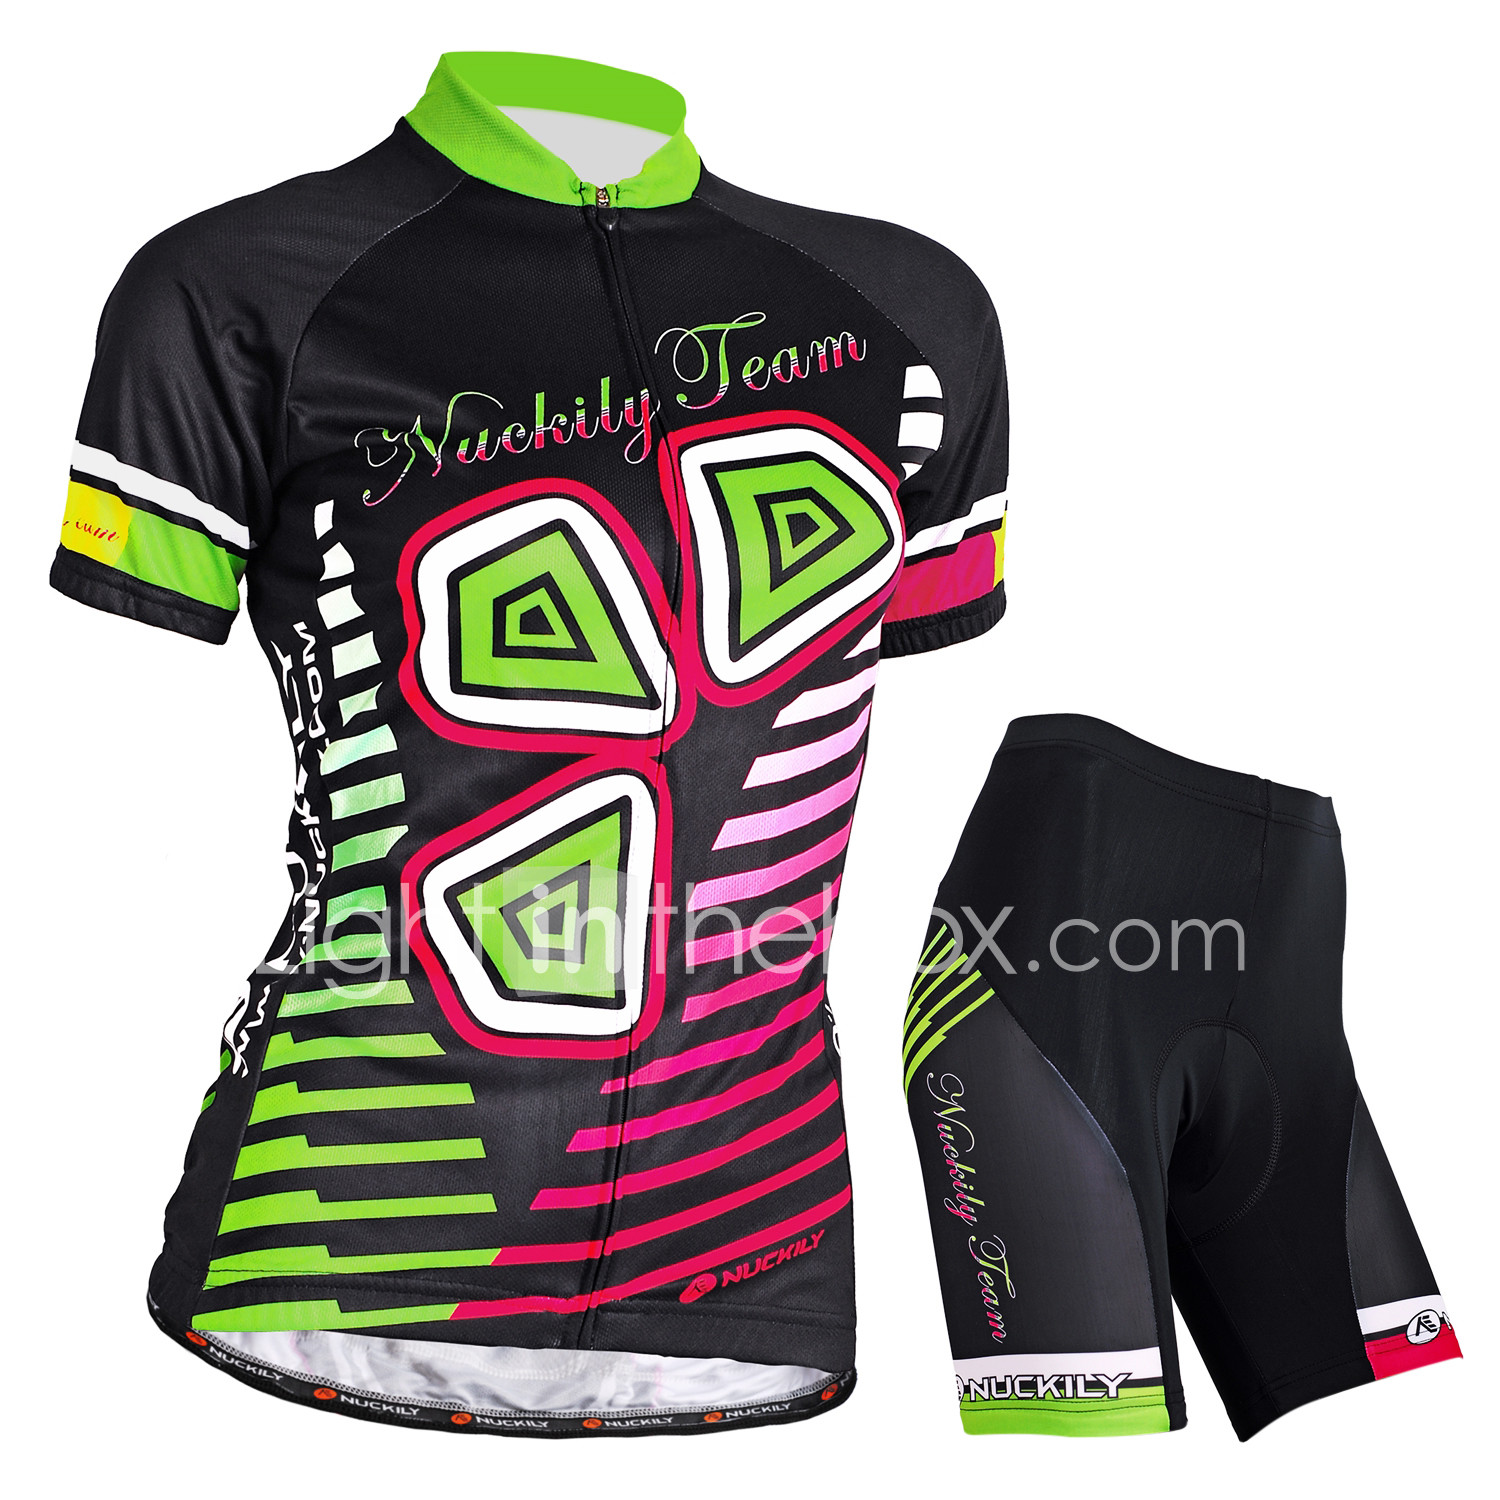 Nuckily Women s Short Sleeve Cycling Jersey with Shorts - Black Bike Shorts  Jersey Clothing Suit Waterproof 56e14f131